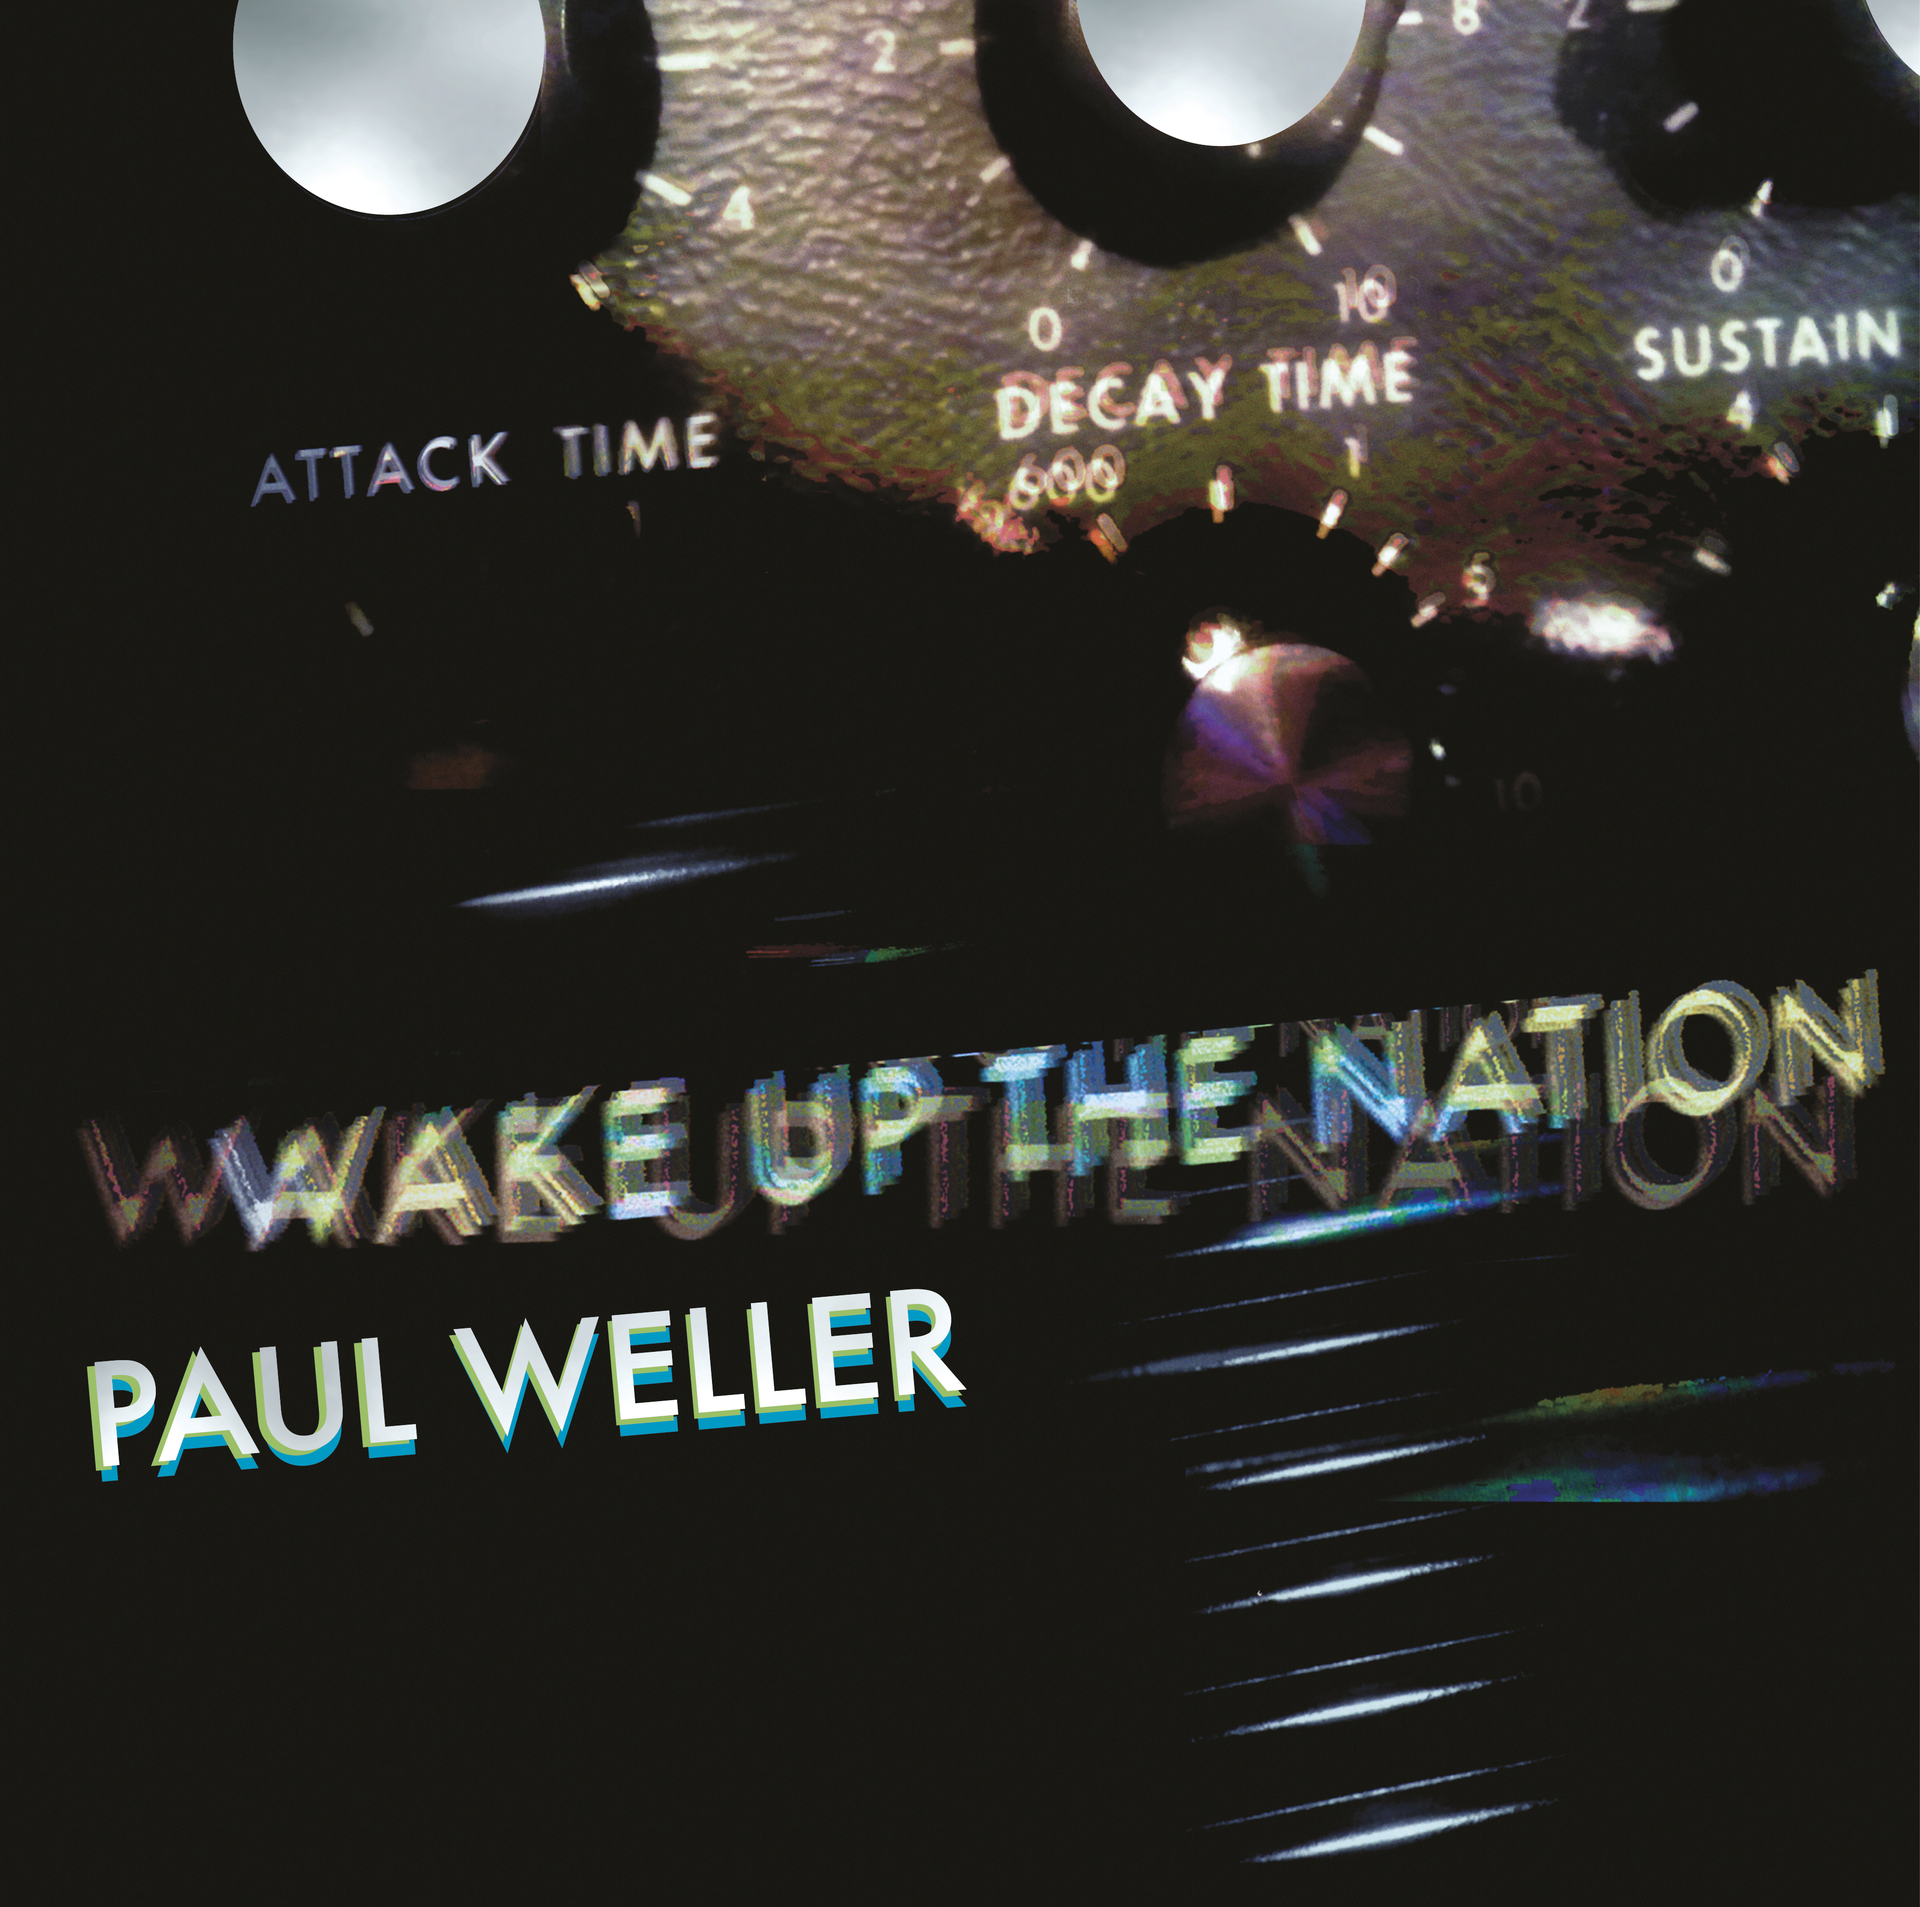 Album artwork for Wake Up The Nation